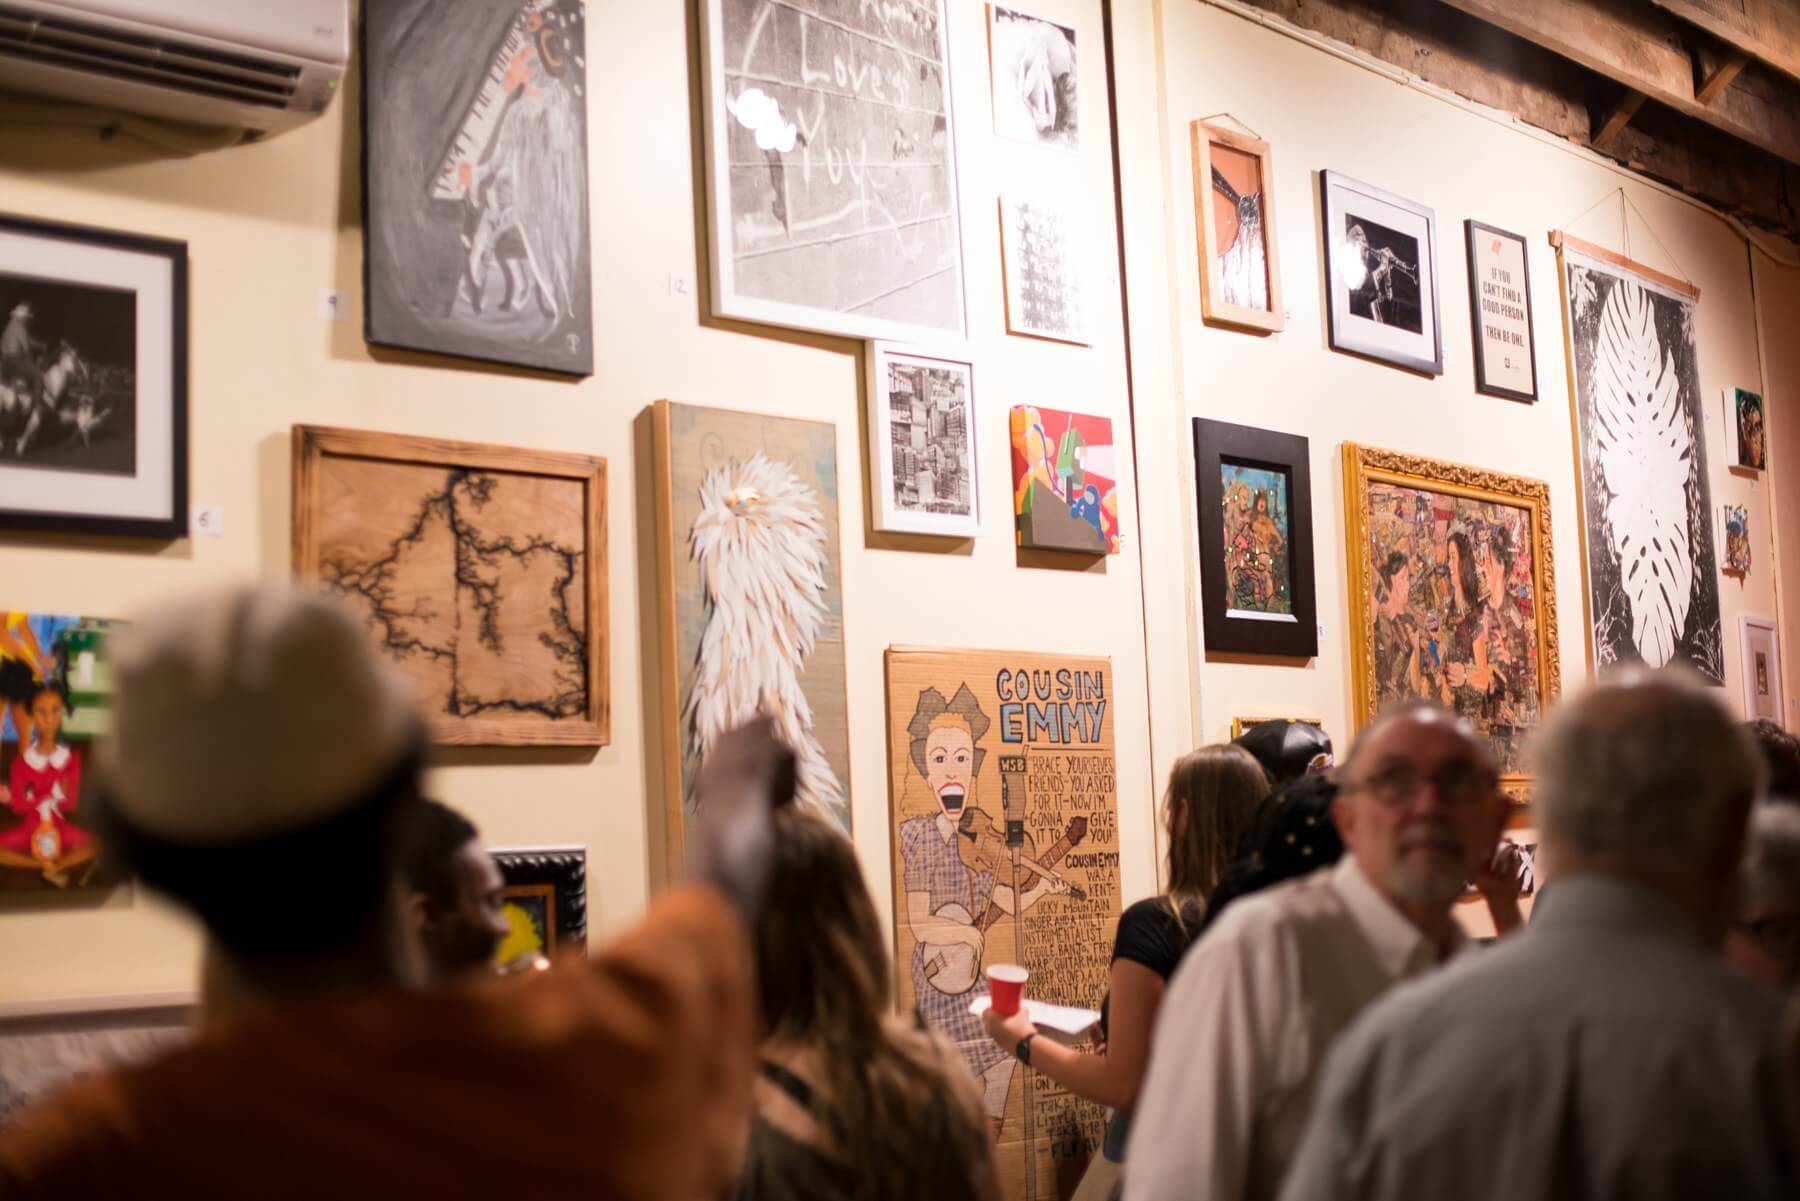 The Jaybird recently joined downtown's growing list of quirky destinations. Artwork and books line the wall, keeping patrons engaged. Image: Glory McLaughlin